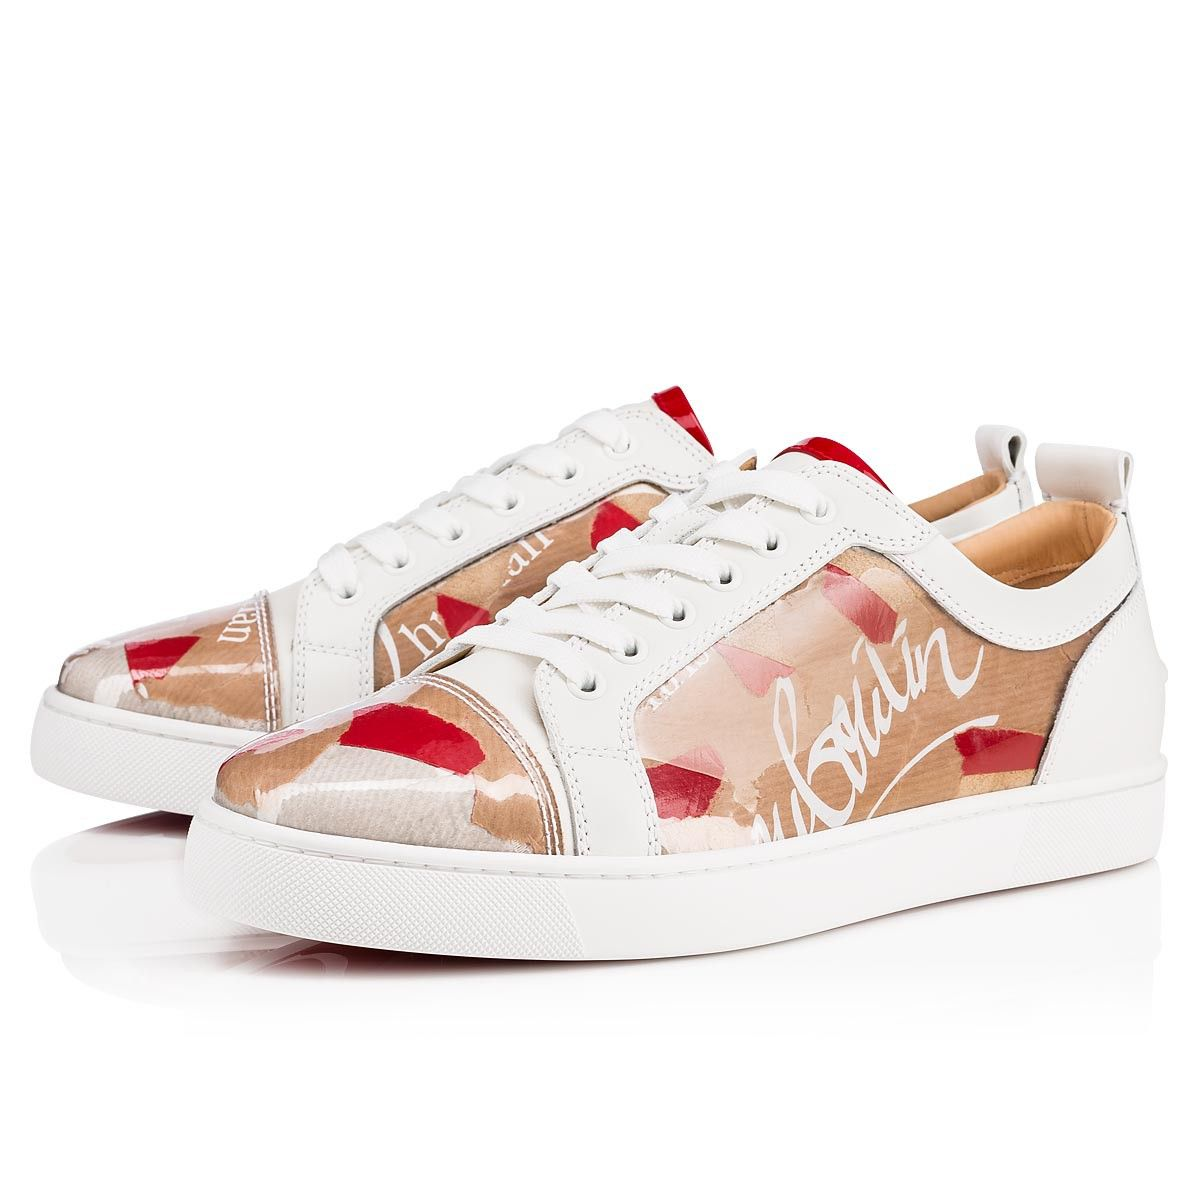 2e89a5085f1 Christian Louboutin s Louis Junior low-top sneakers are elegantly  comfortable. Get a behind the